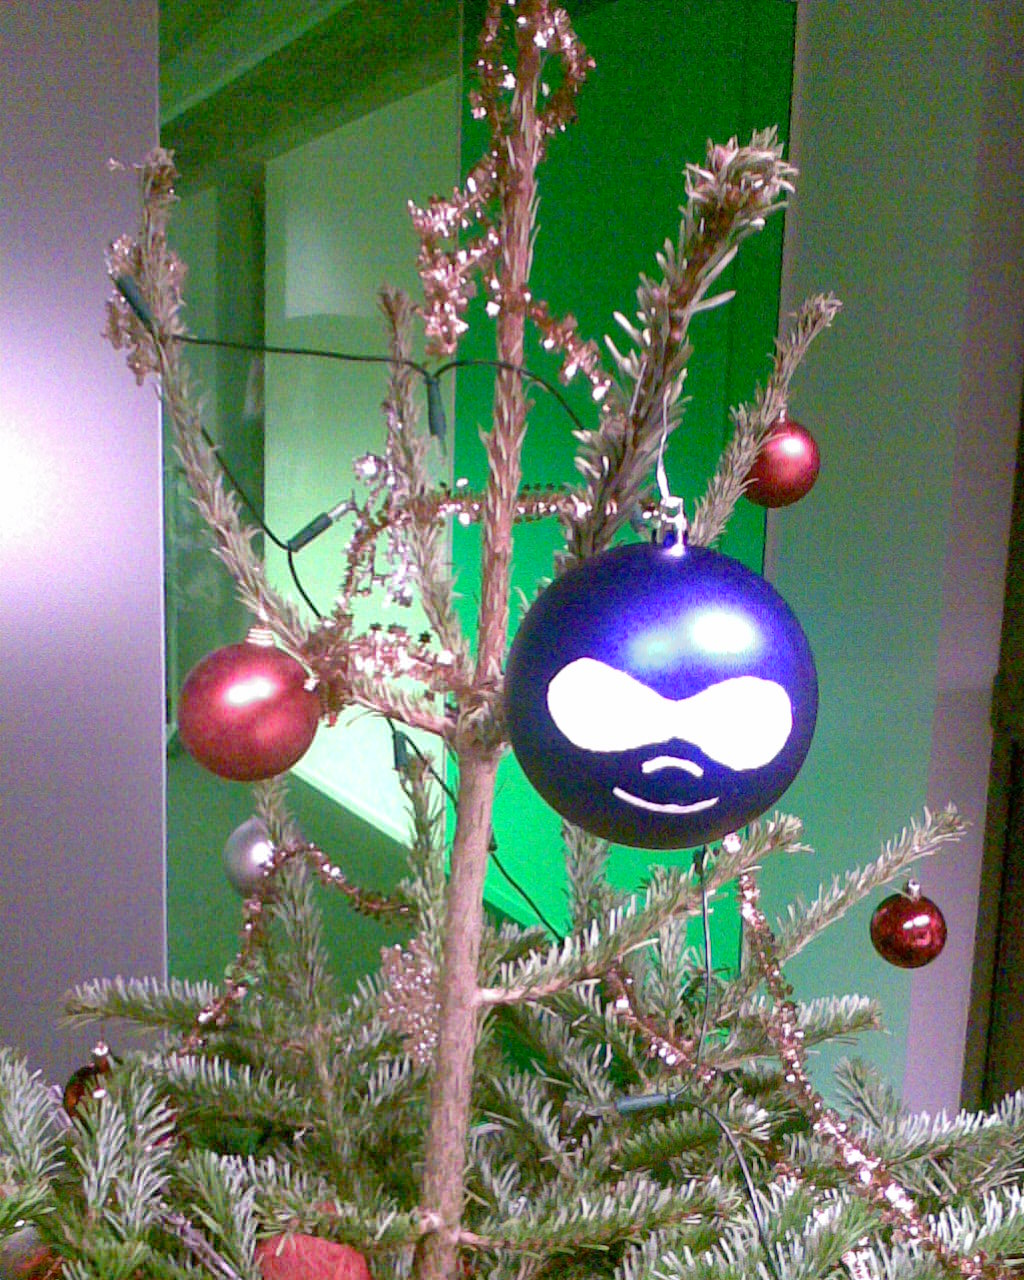 A close-up of a drupal chritmas ball in the christmas tree